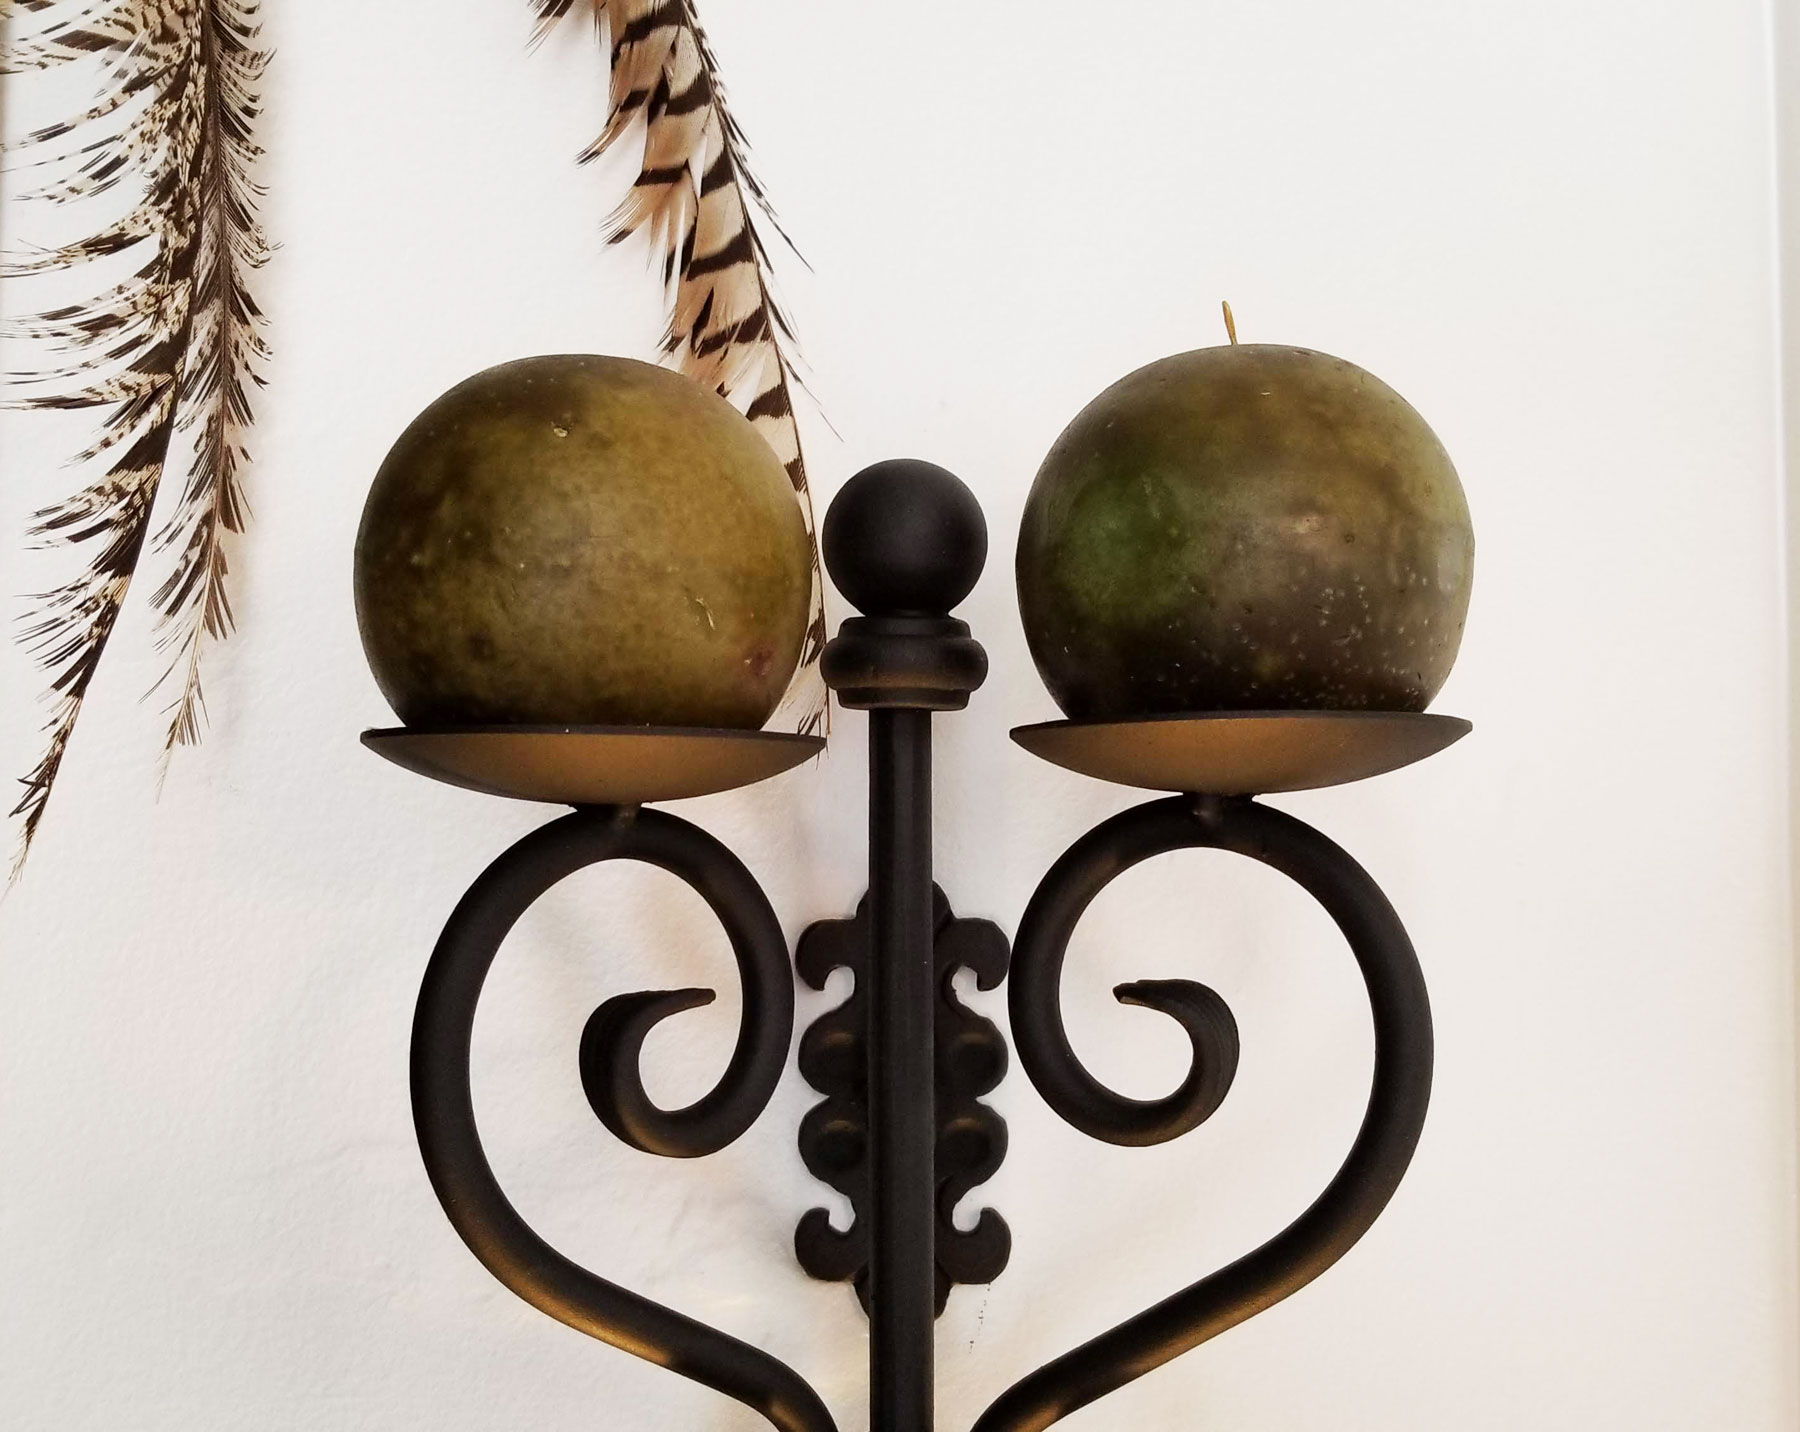 Wrought Iron Wall Sconce-Unique Craftsmanship in Handmade ... on Black Wrought Iron Wall Candle Holders id=75099